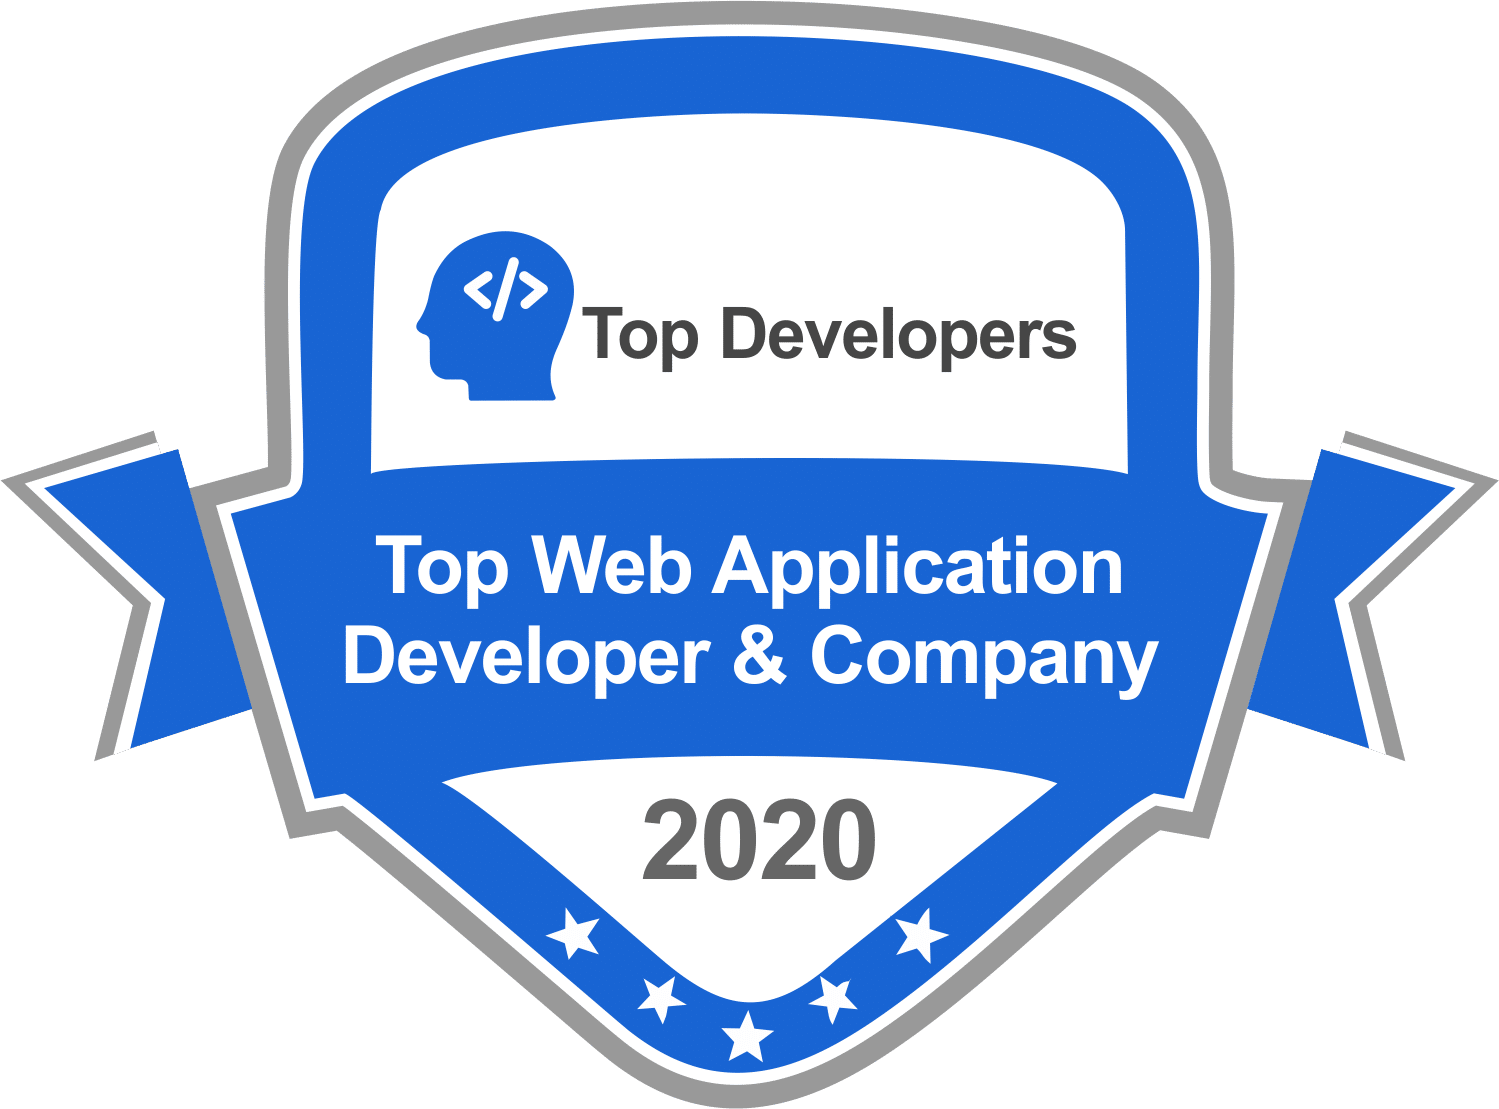 Top Web Application Developer & Company 2020 Awards | eGooty